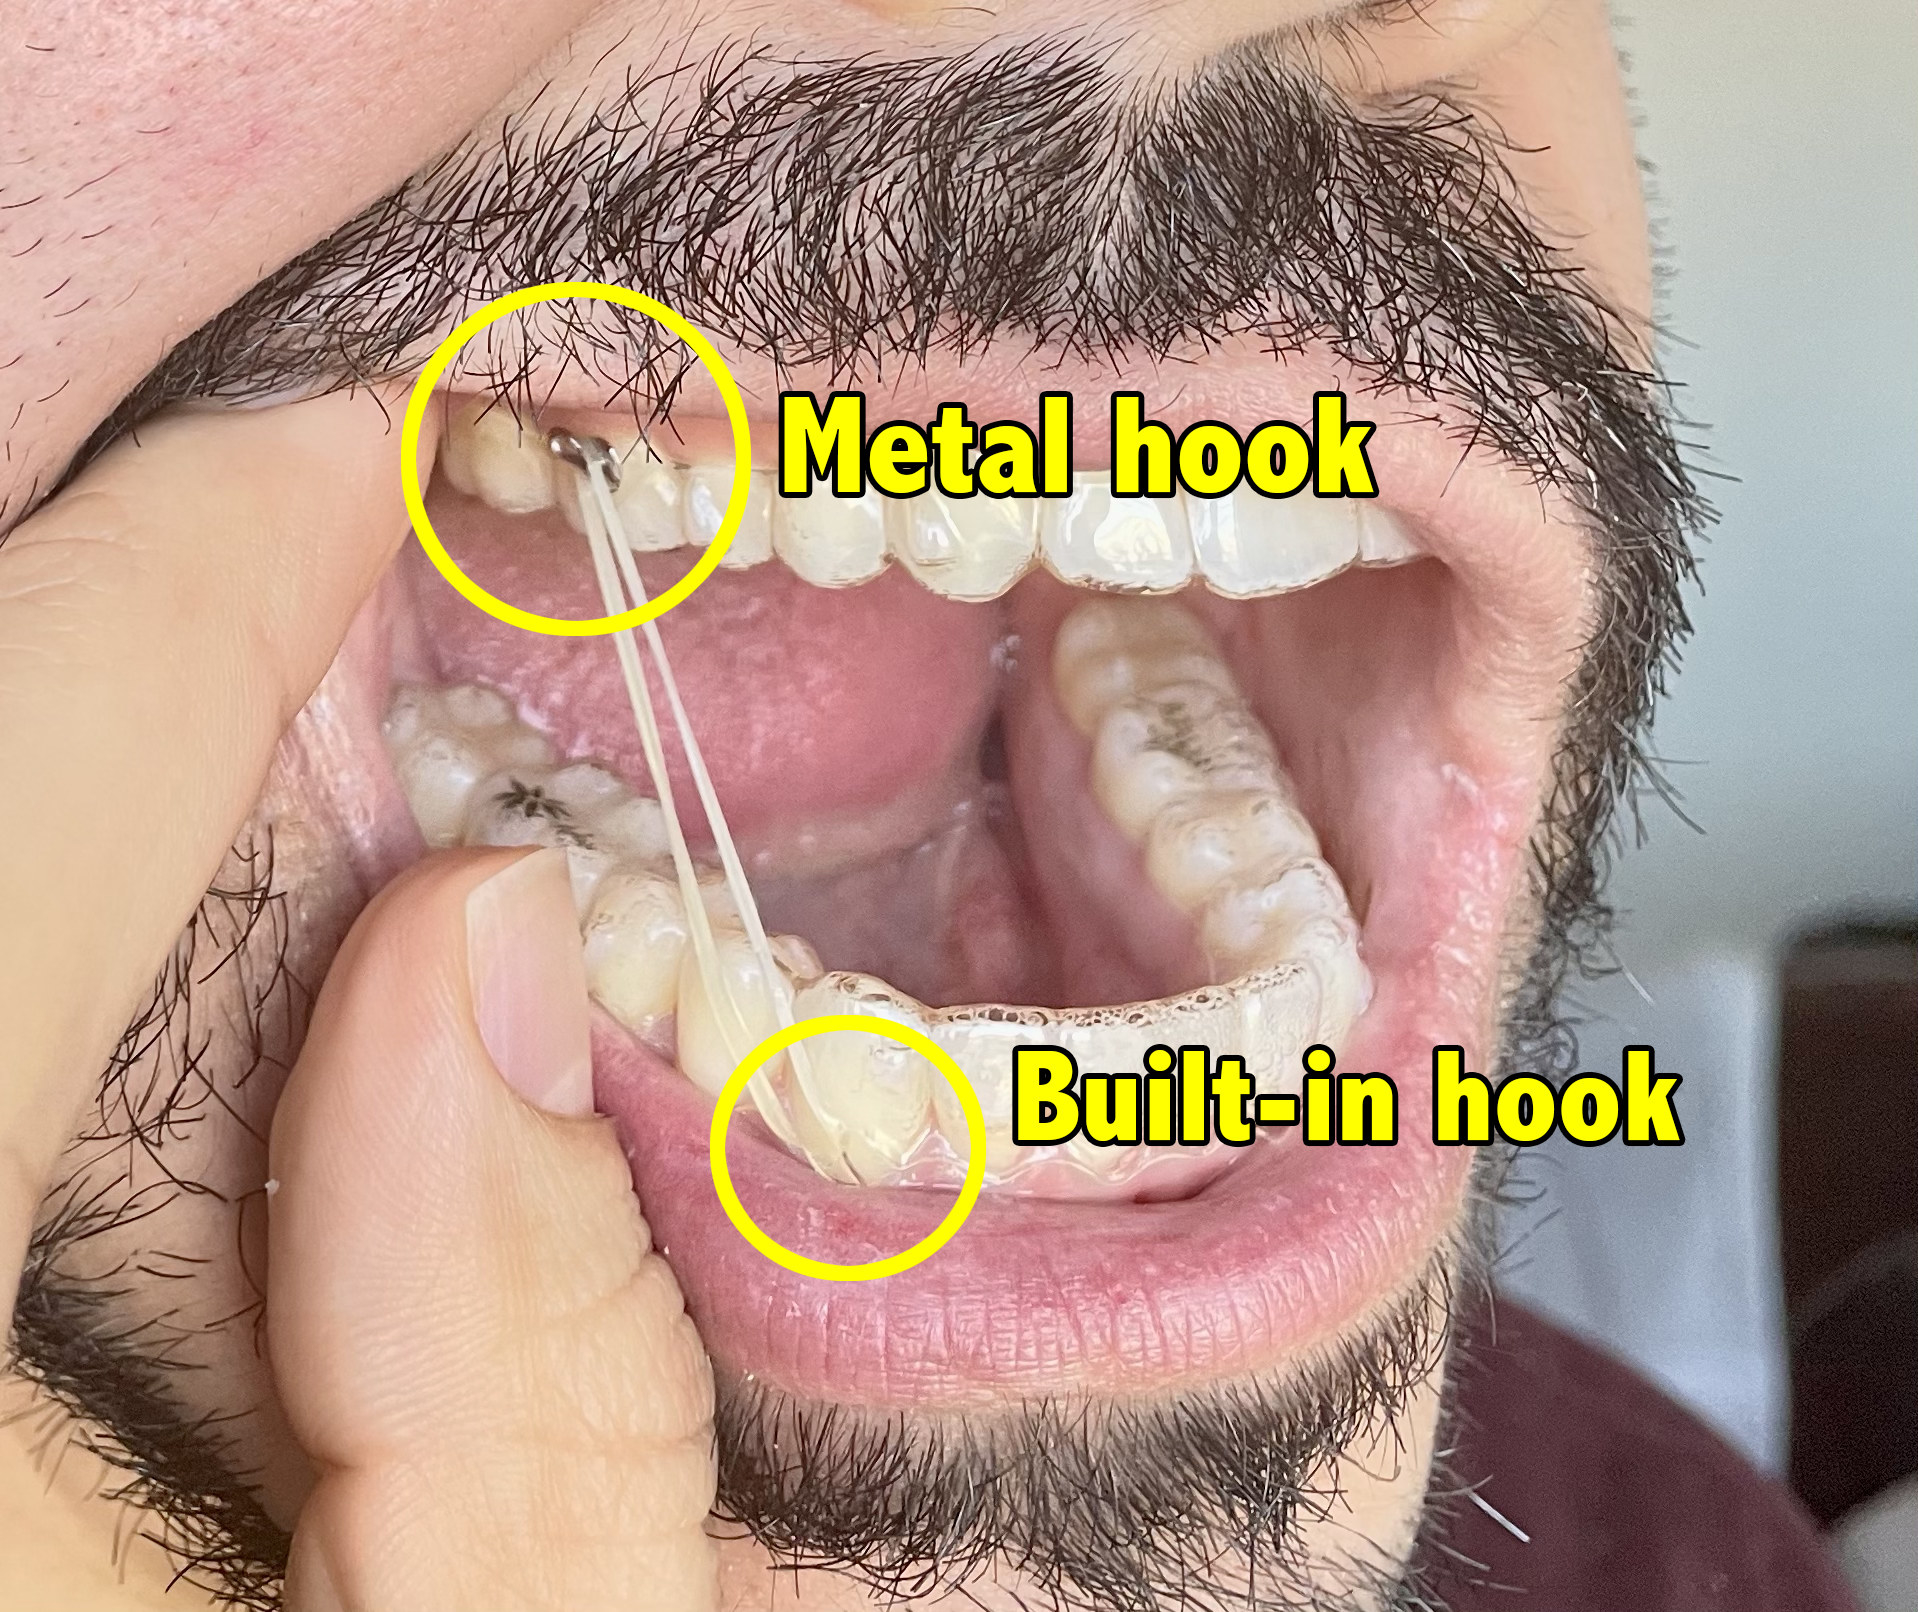 Pablo's mouth, which has a rubber band connecting his top and bottom teeth with the use of hooks